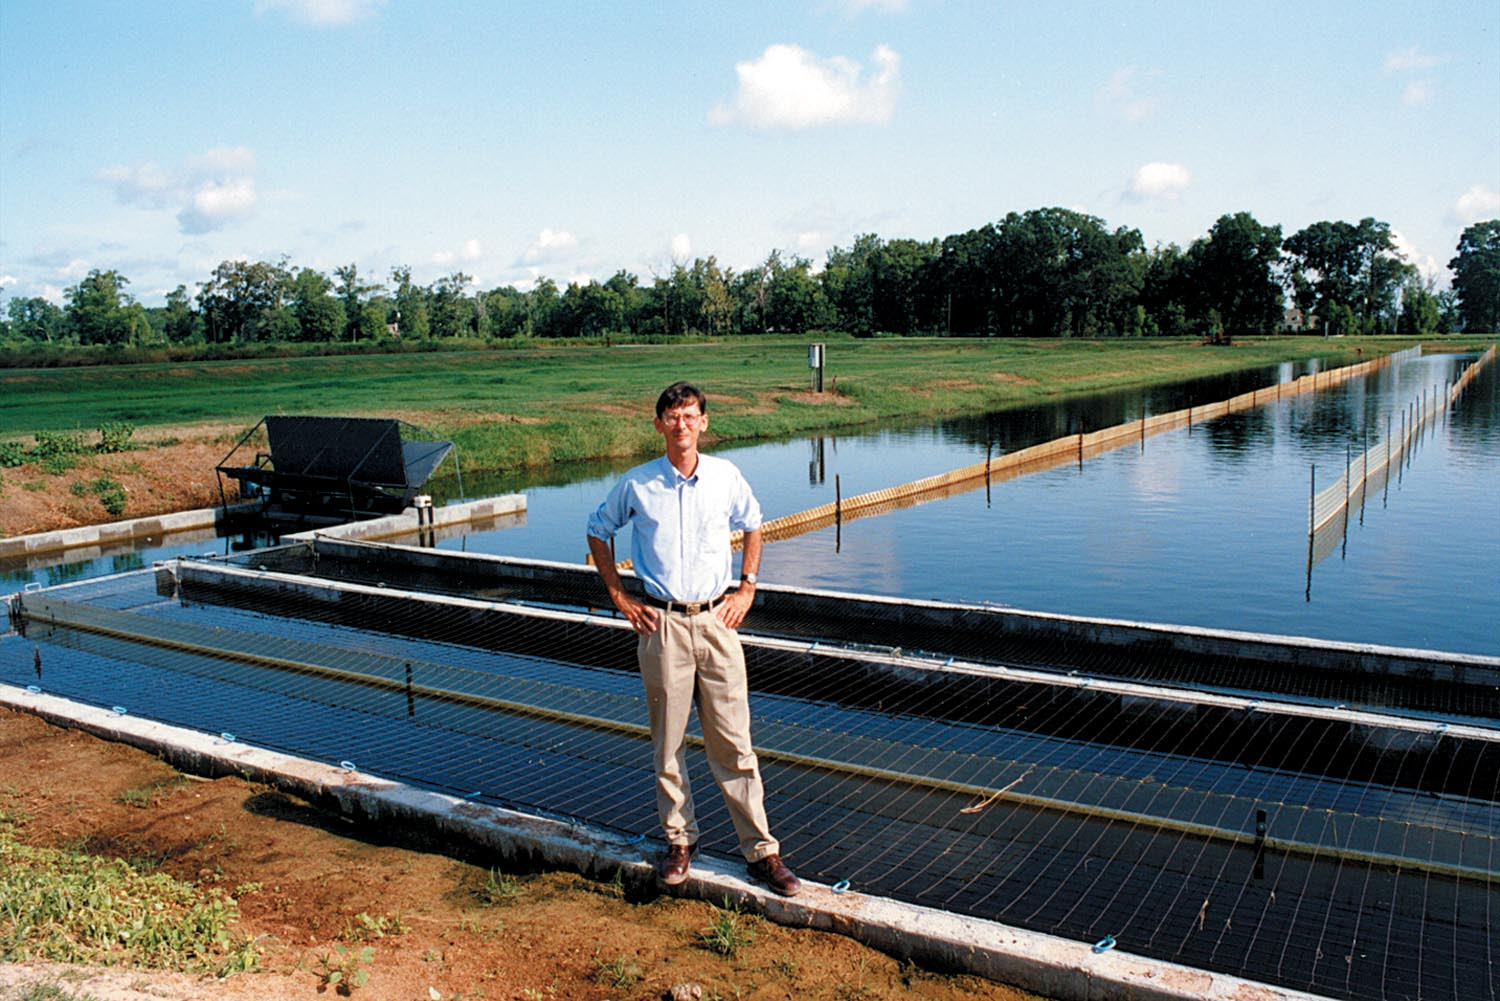 Potential for the Partitioned Aquaculture System in Louisiana